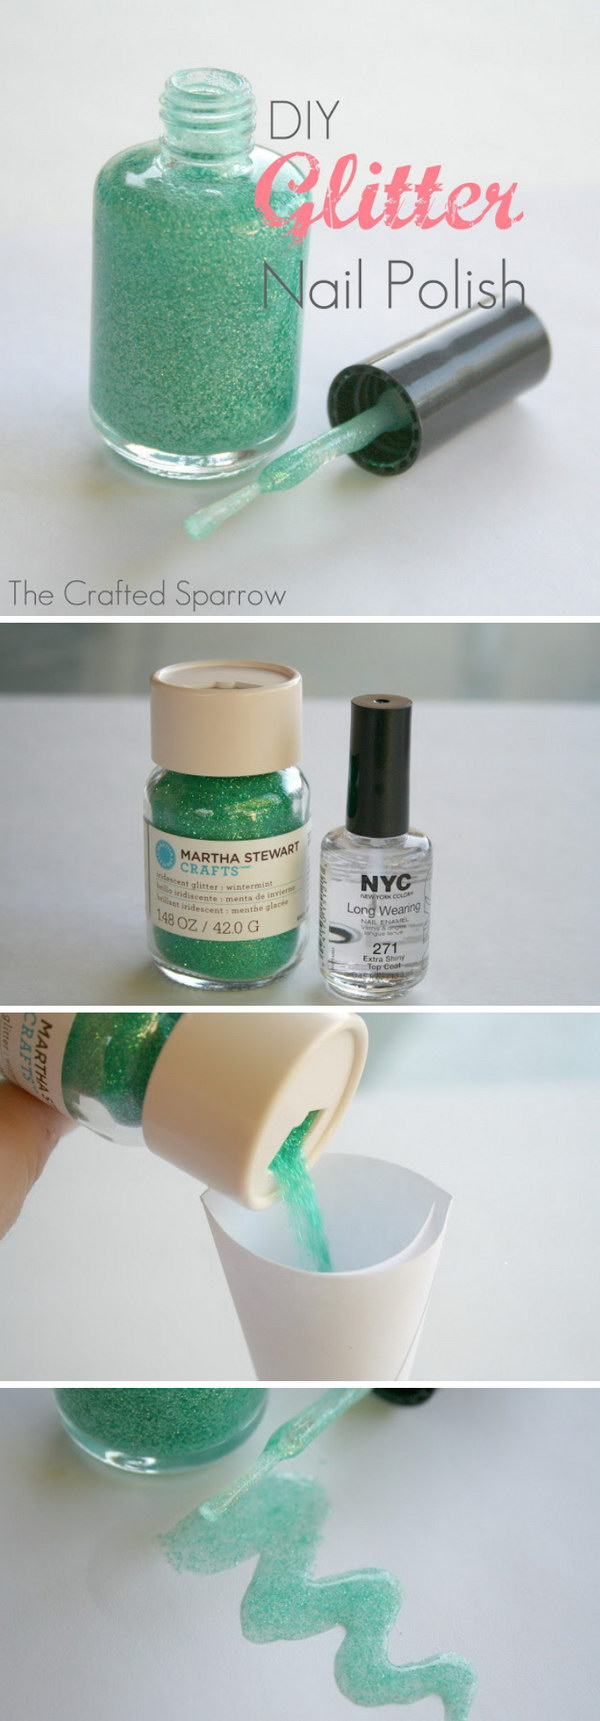 11 Awesome Nail Hacks You Should Know